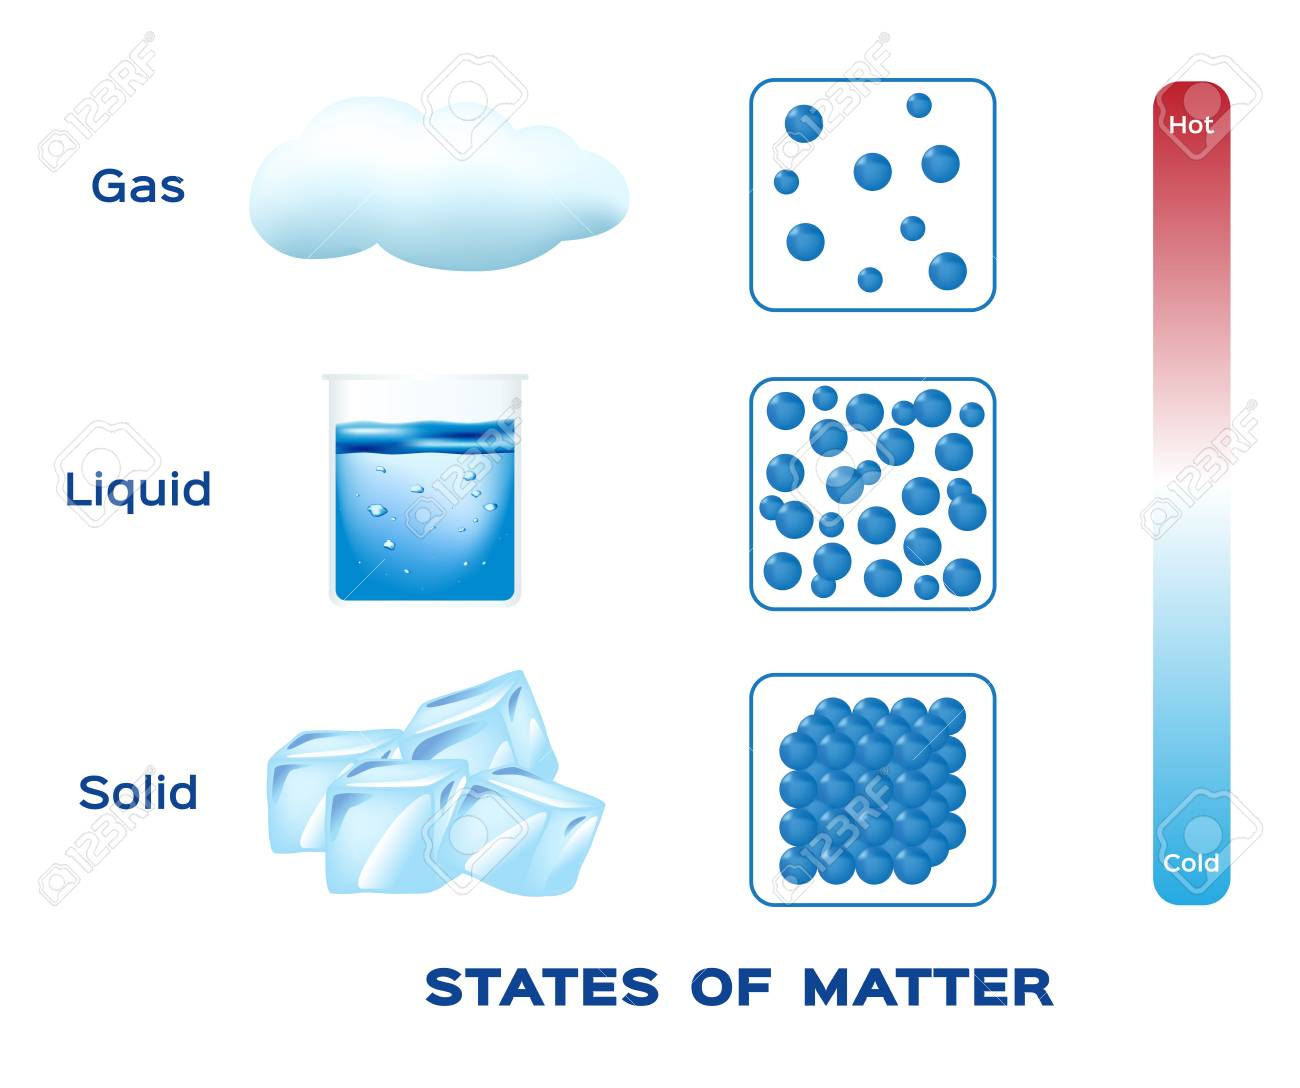 states of matter solid liquid and gas vector royalty free cliparts rh 123rf com State of Matter Solid State of Matter Solid